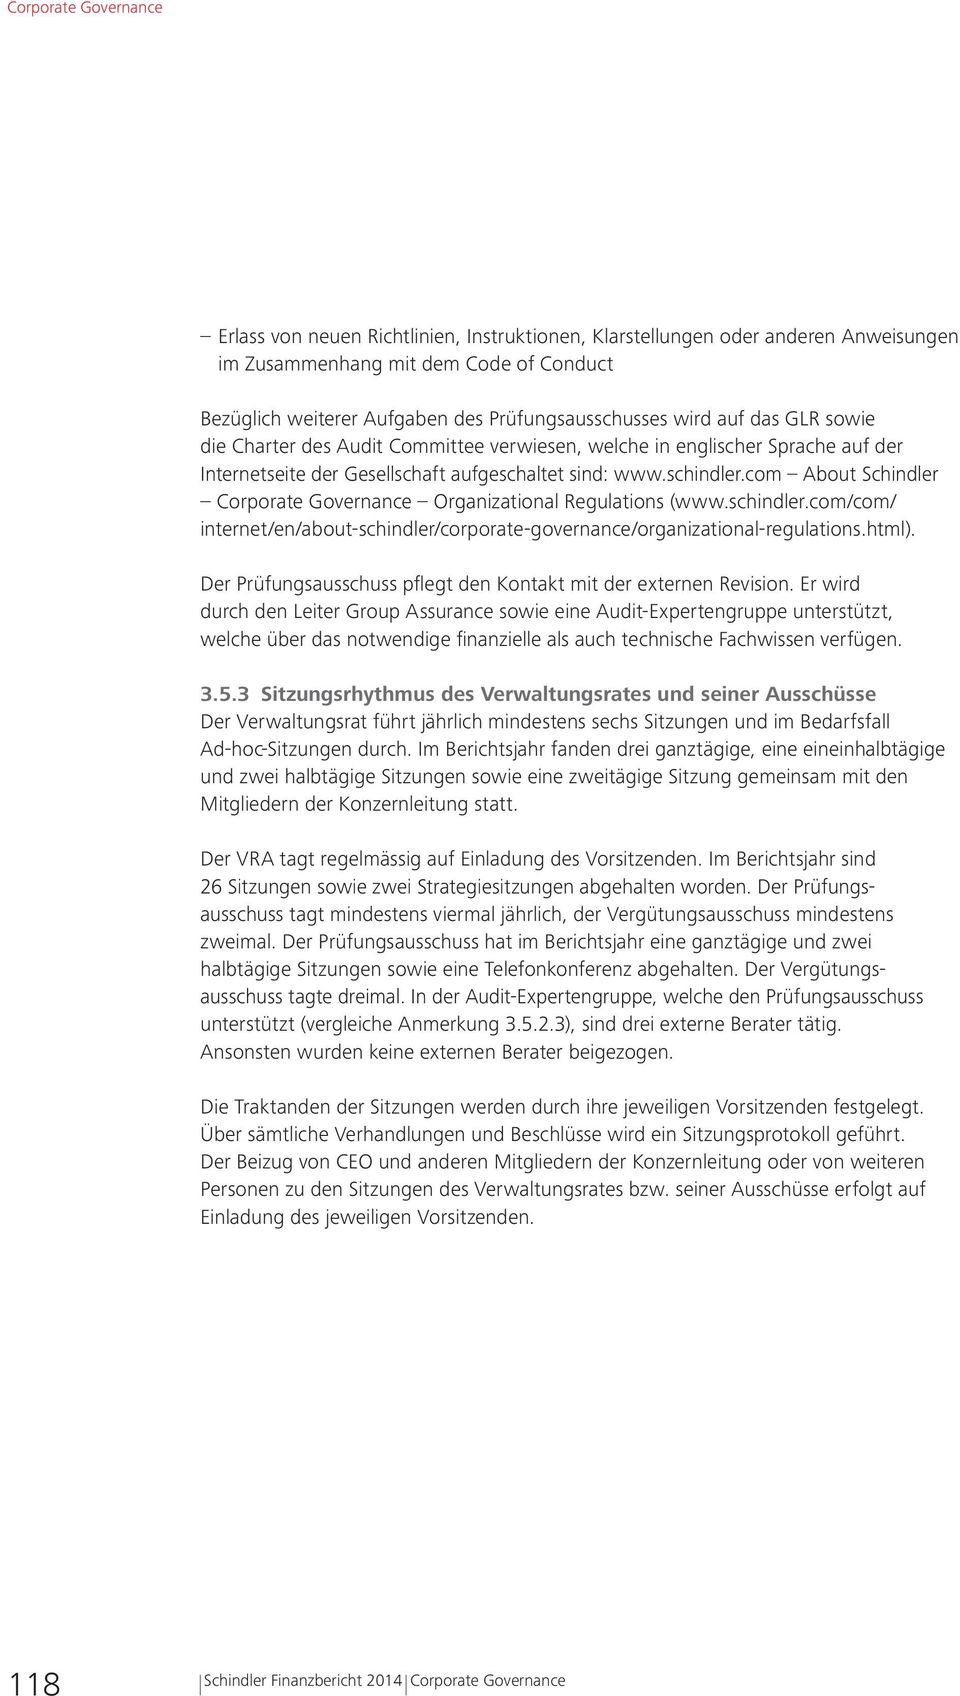 com About Schindler Corporate Governance Organizational Regulations (www.schindler.com/com/ internet/en/about-schindler/corporate-governance/organizational-regulations.html).